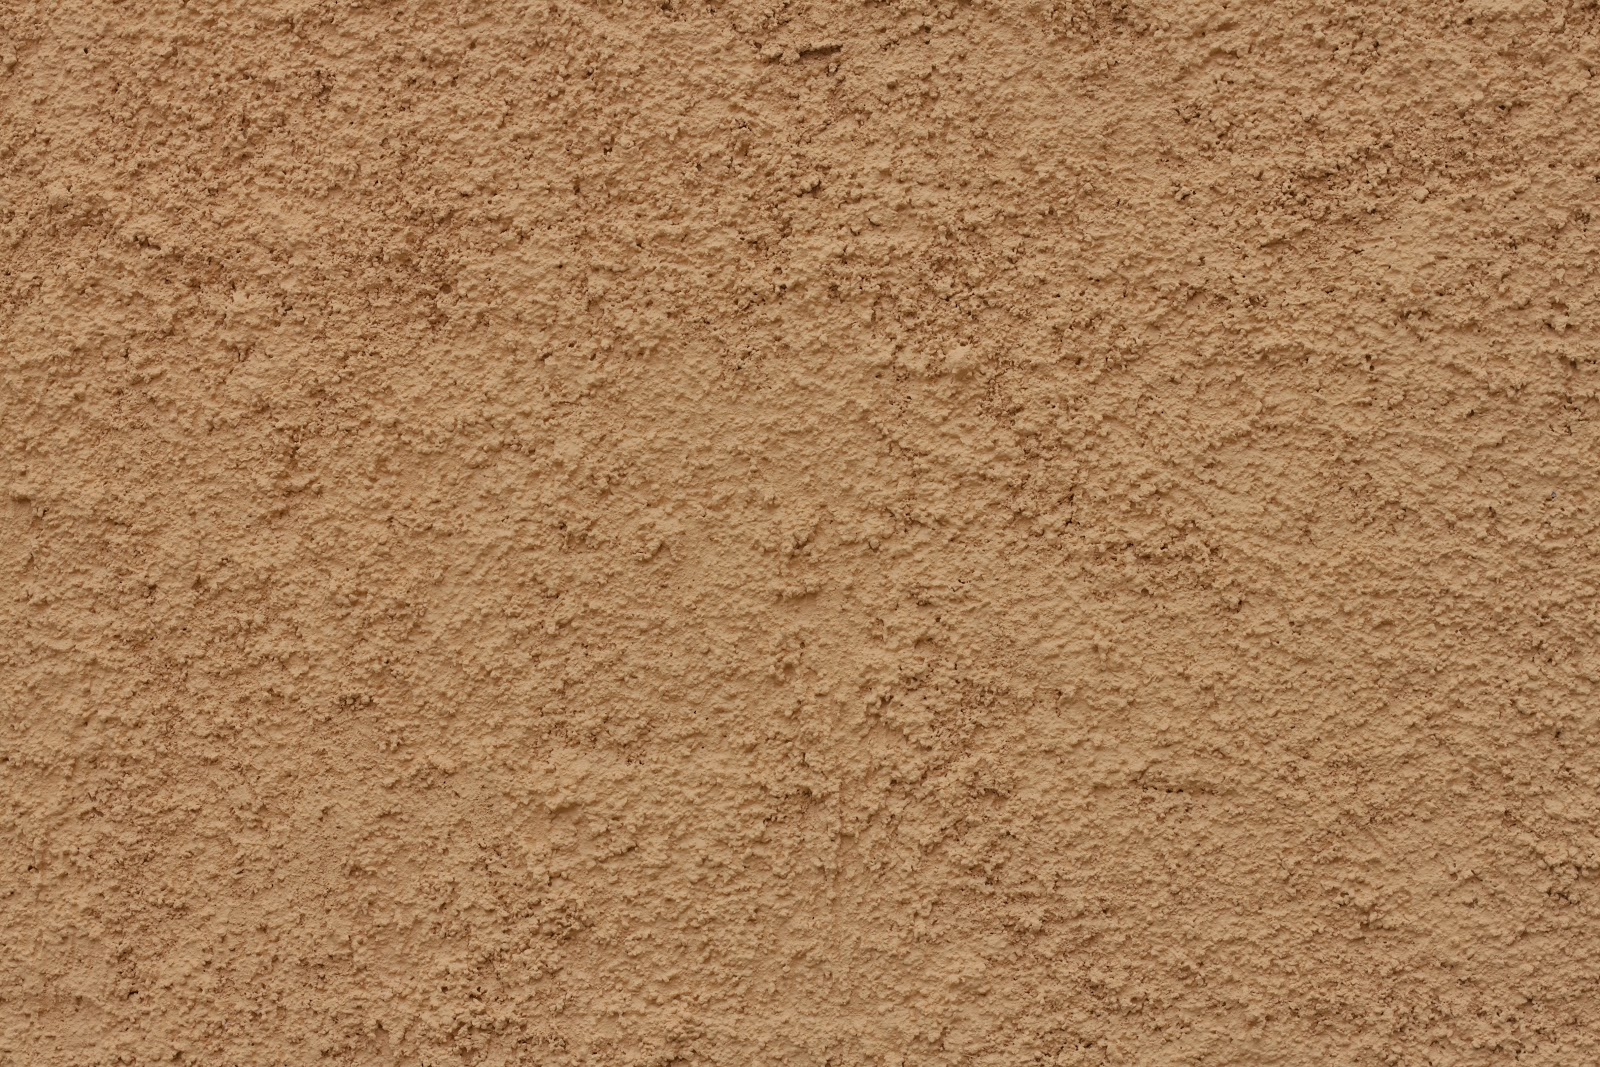 High Resolution Seamless Textures Rough Stucco Texture